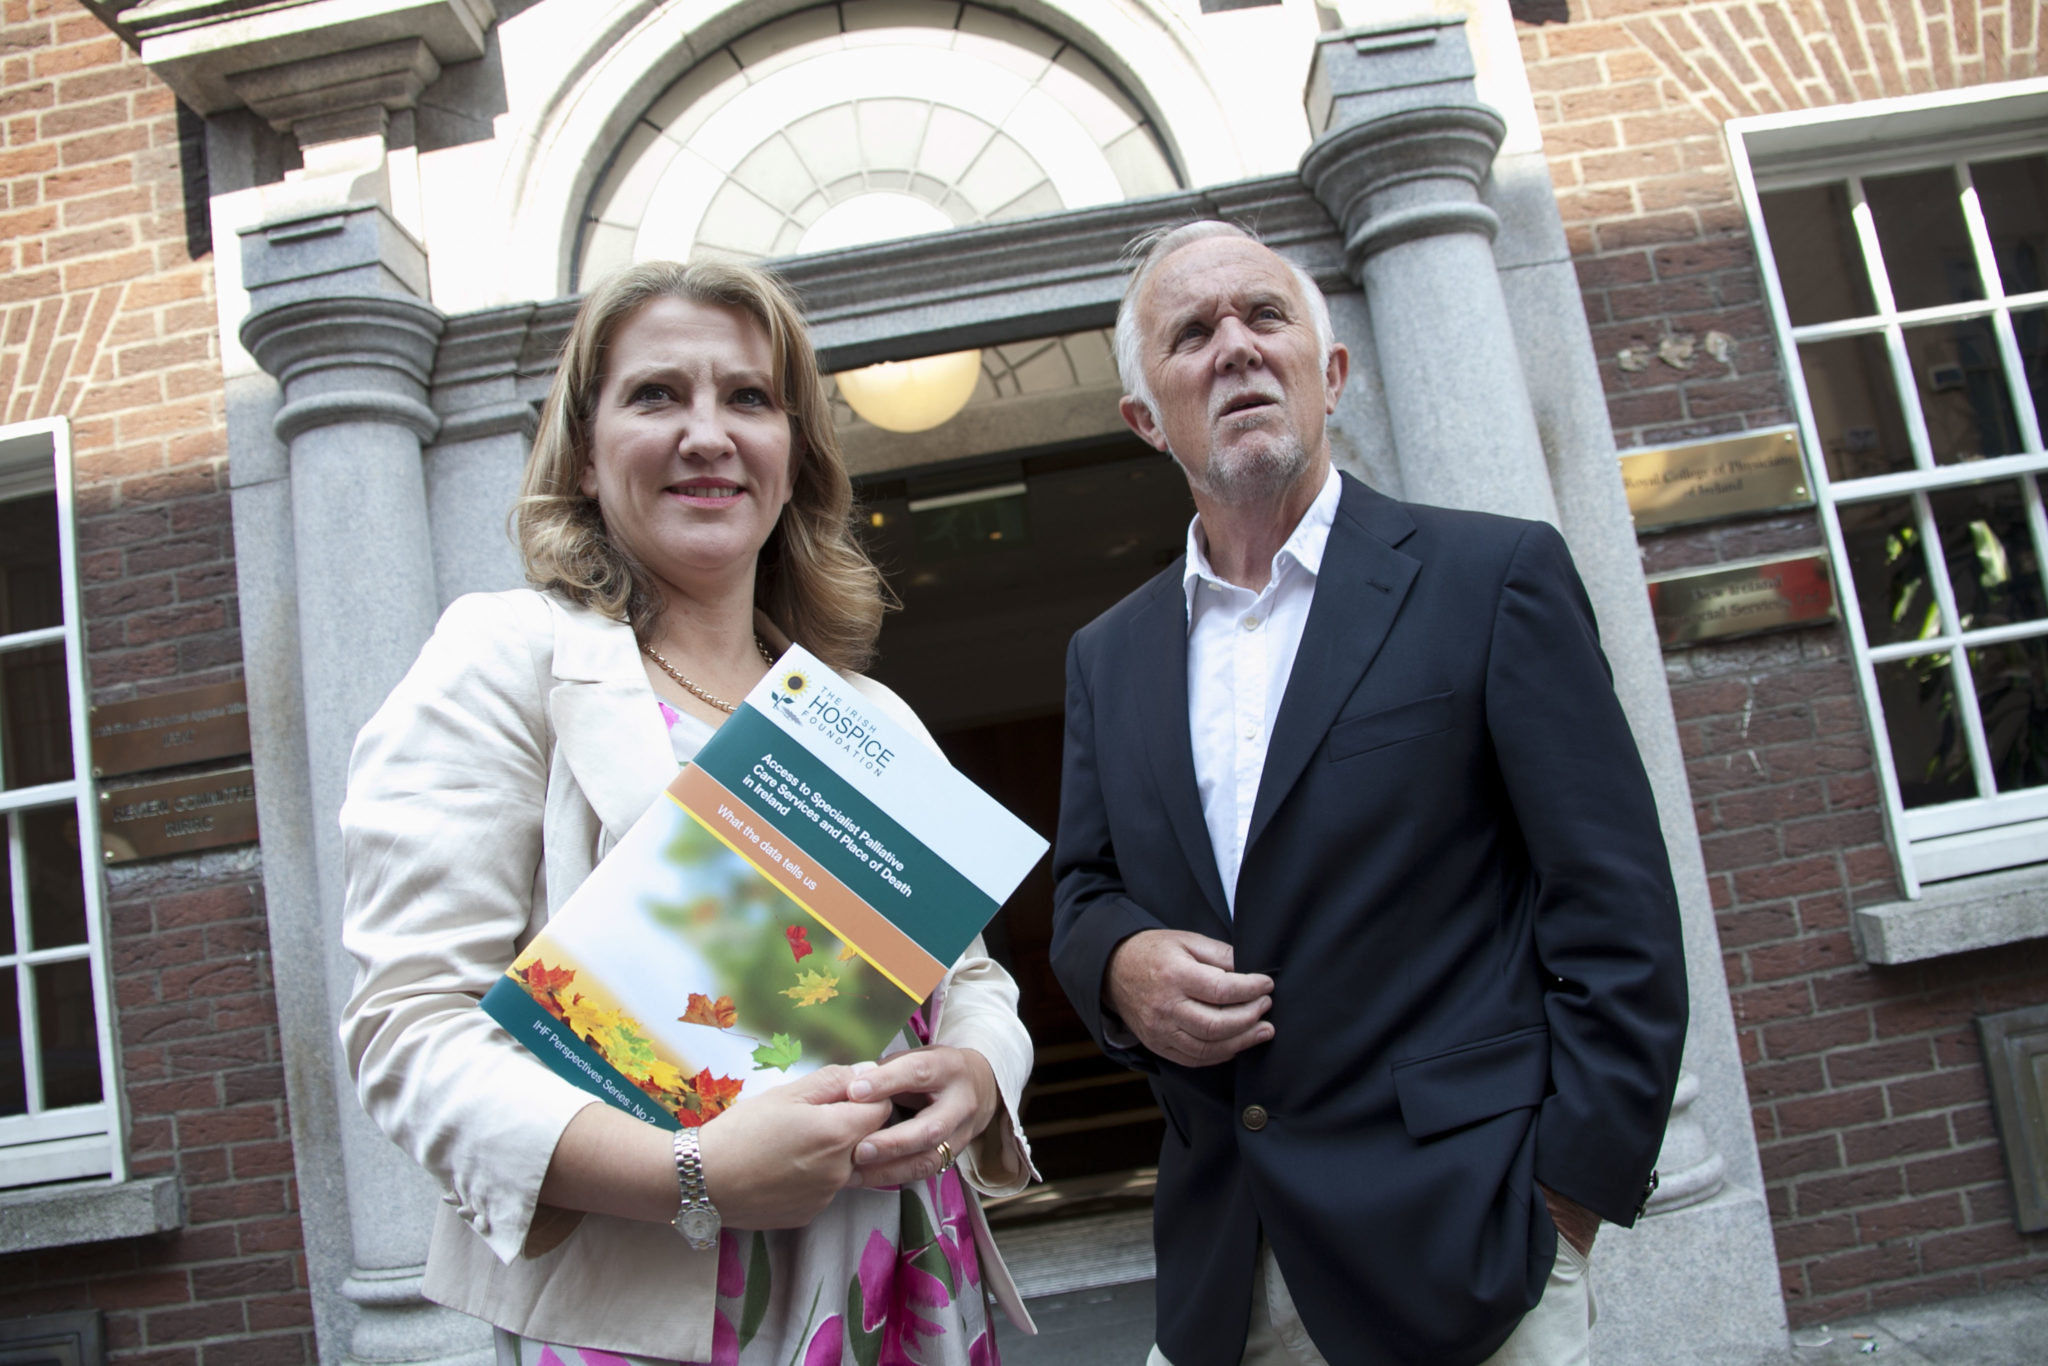 Access to Specialist Palliative Care Services and Place of Death in Ireland - what the Data Tells Us. Sharon Foley CEO Irish Hospice Foundation (left) and Eugene Murray report author.